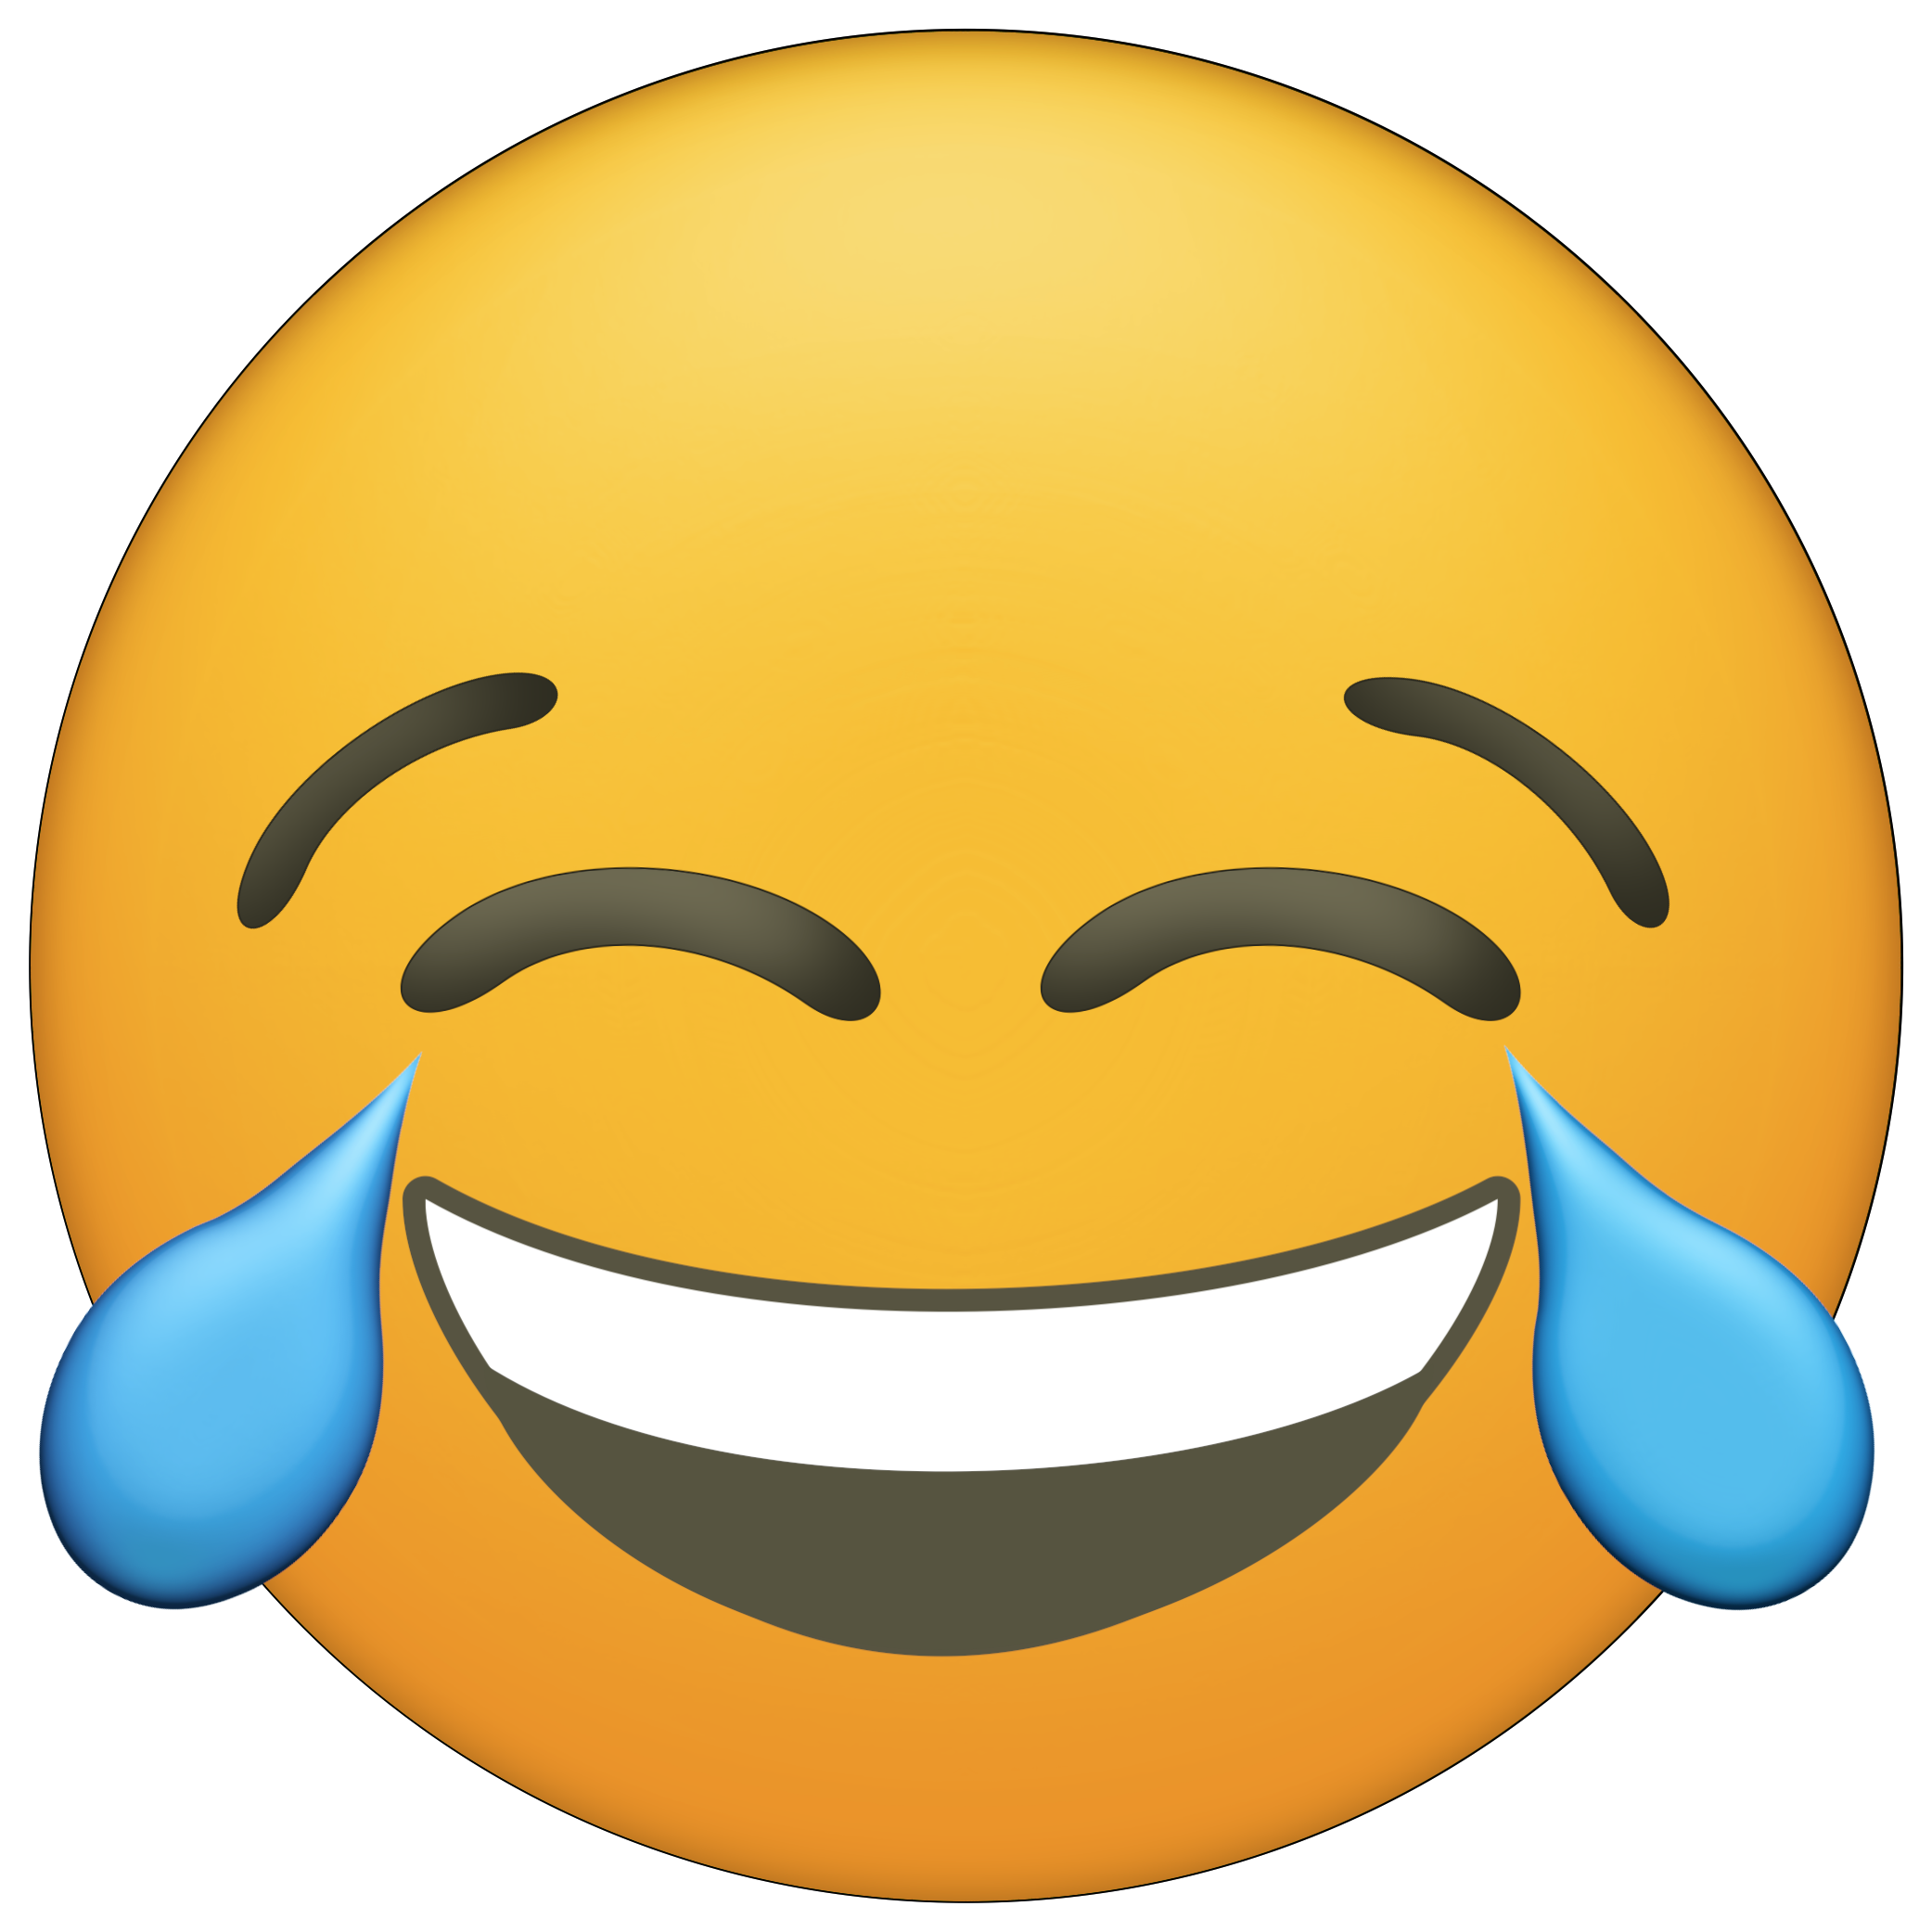 Laughing crying emoji png. Www papertraildesign com wp